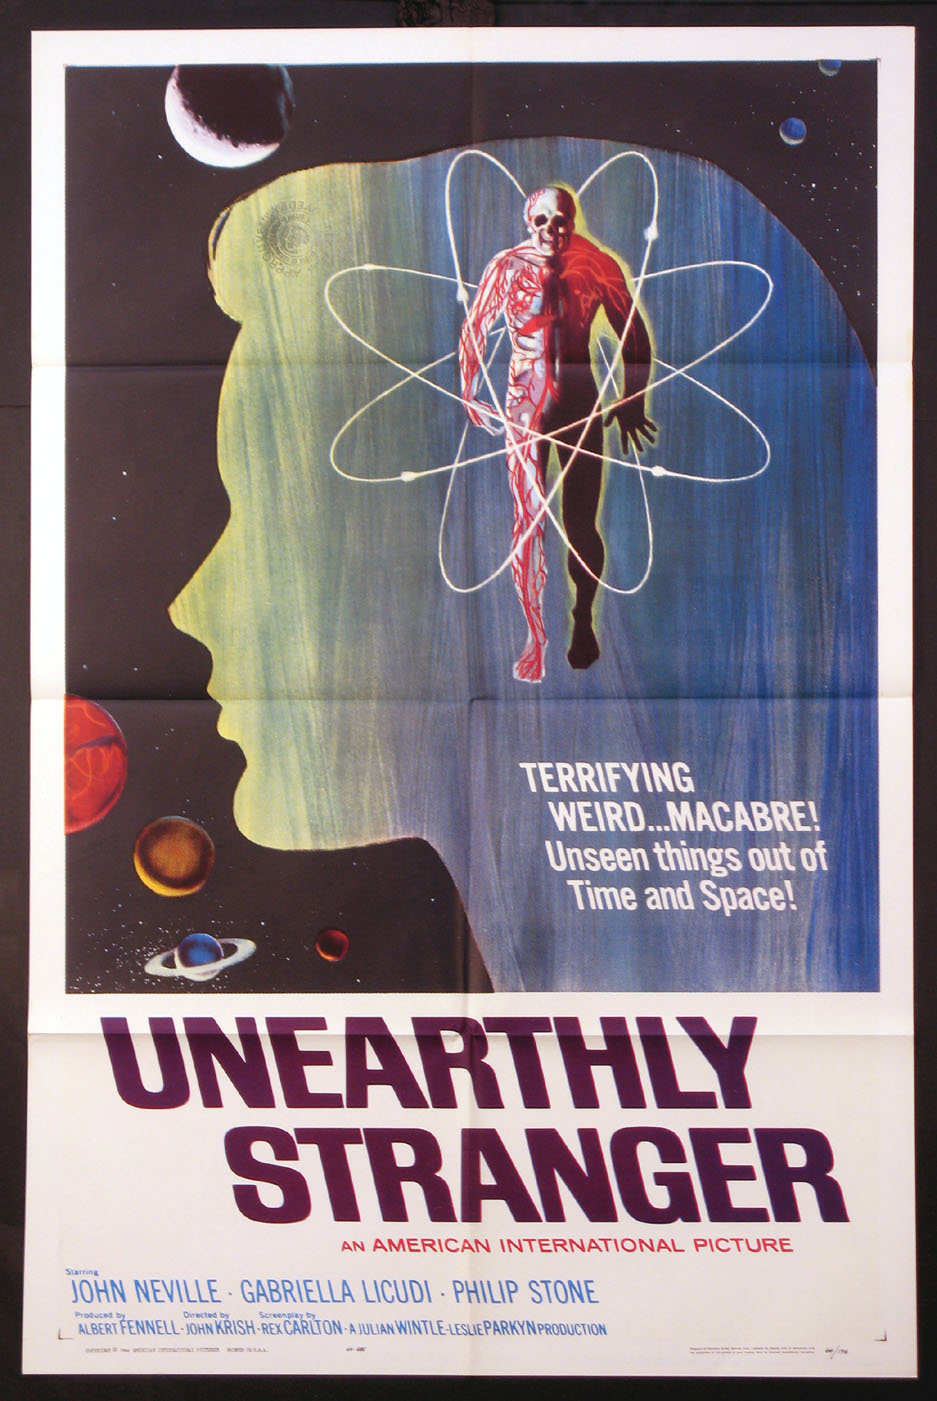 UNEARTHLY STRANGER @ FilmPosters.com